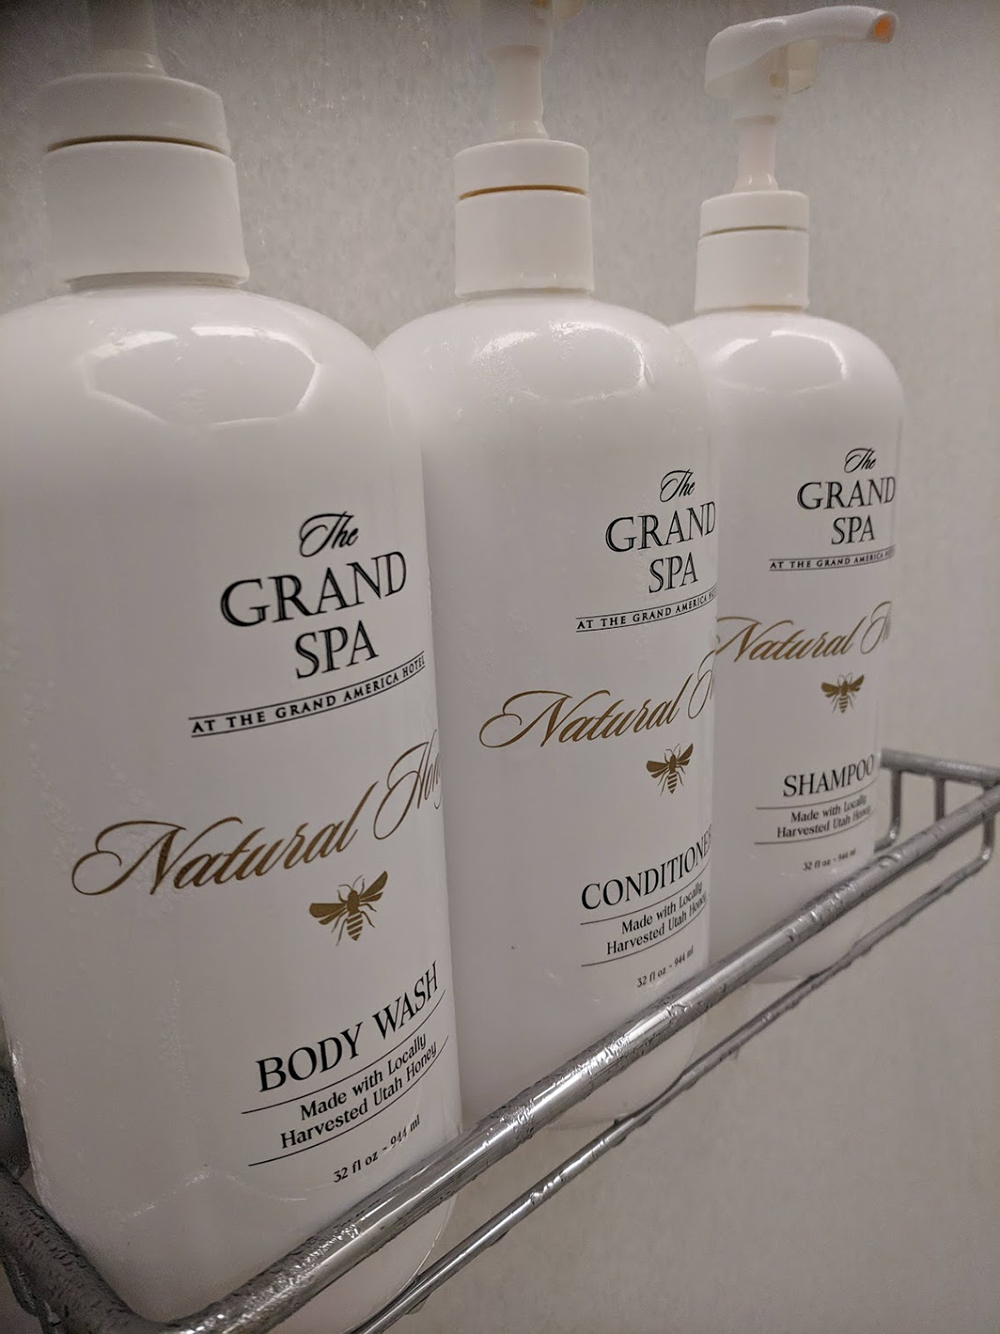 The Spa at The Grand's custom shower selection smells of sweet honey.